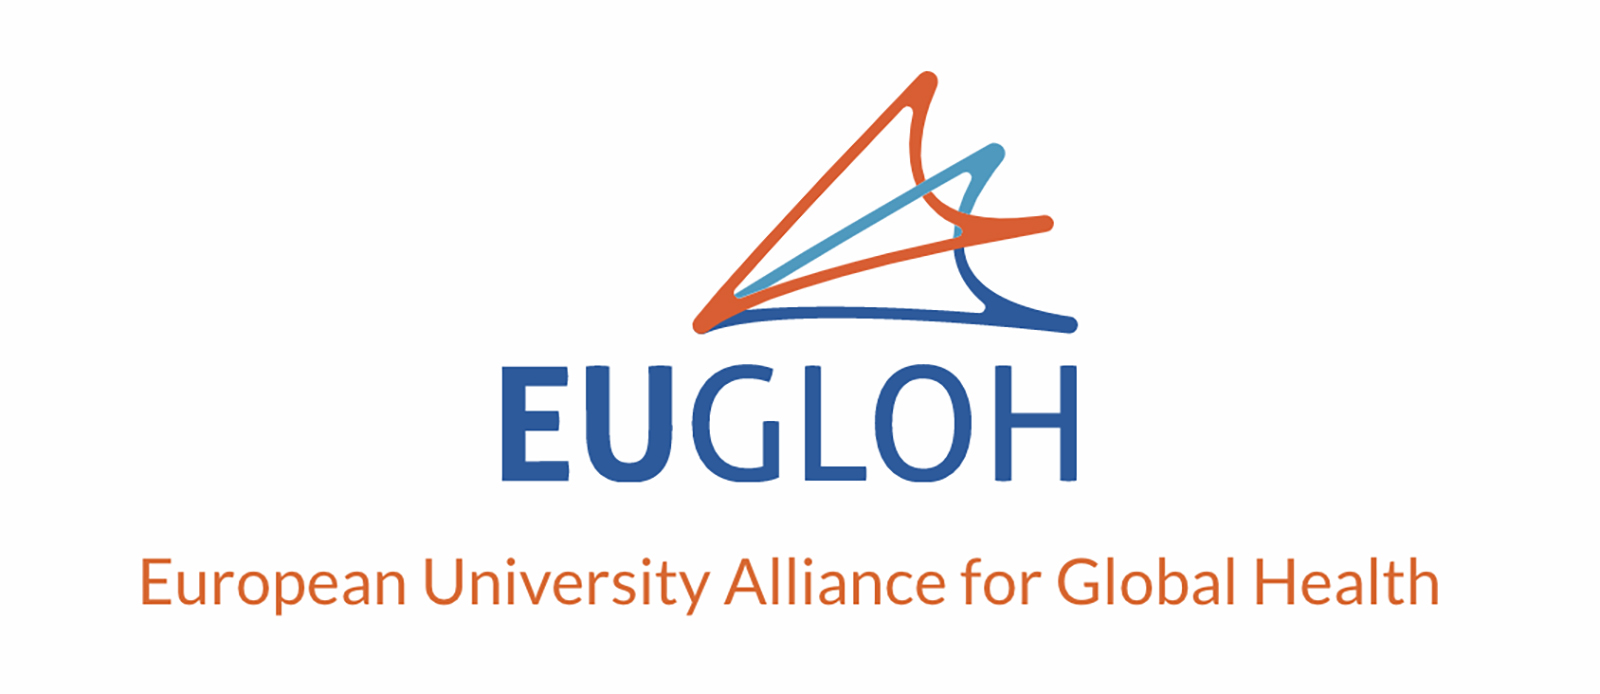 EUGLOH Summer School on Large-Scale Facilities for Global Health